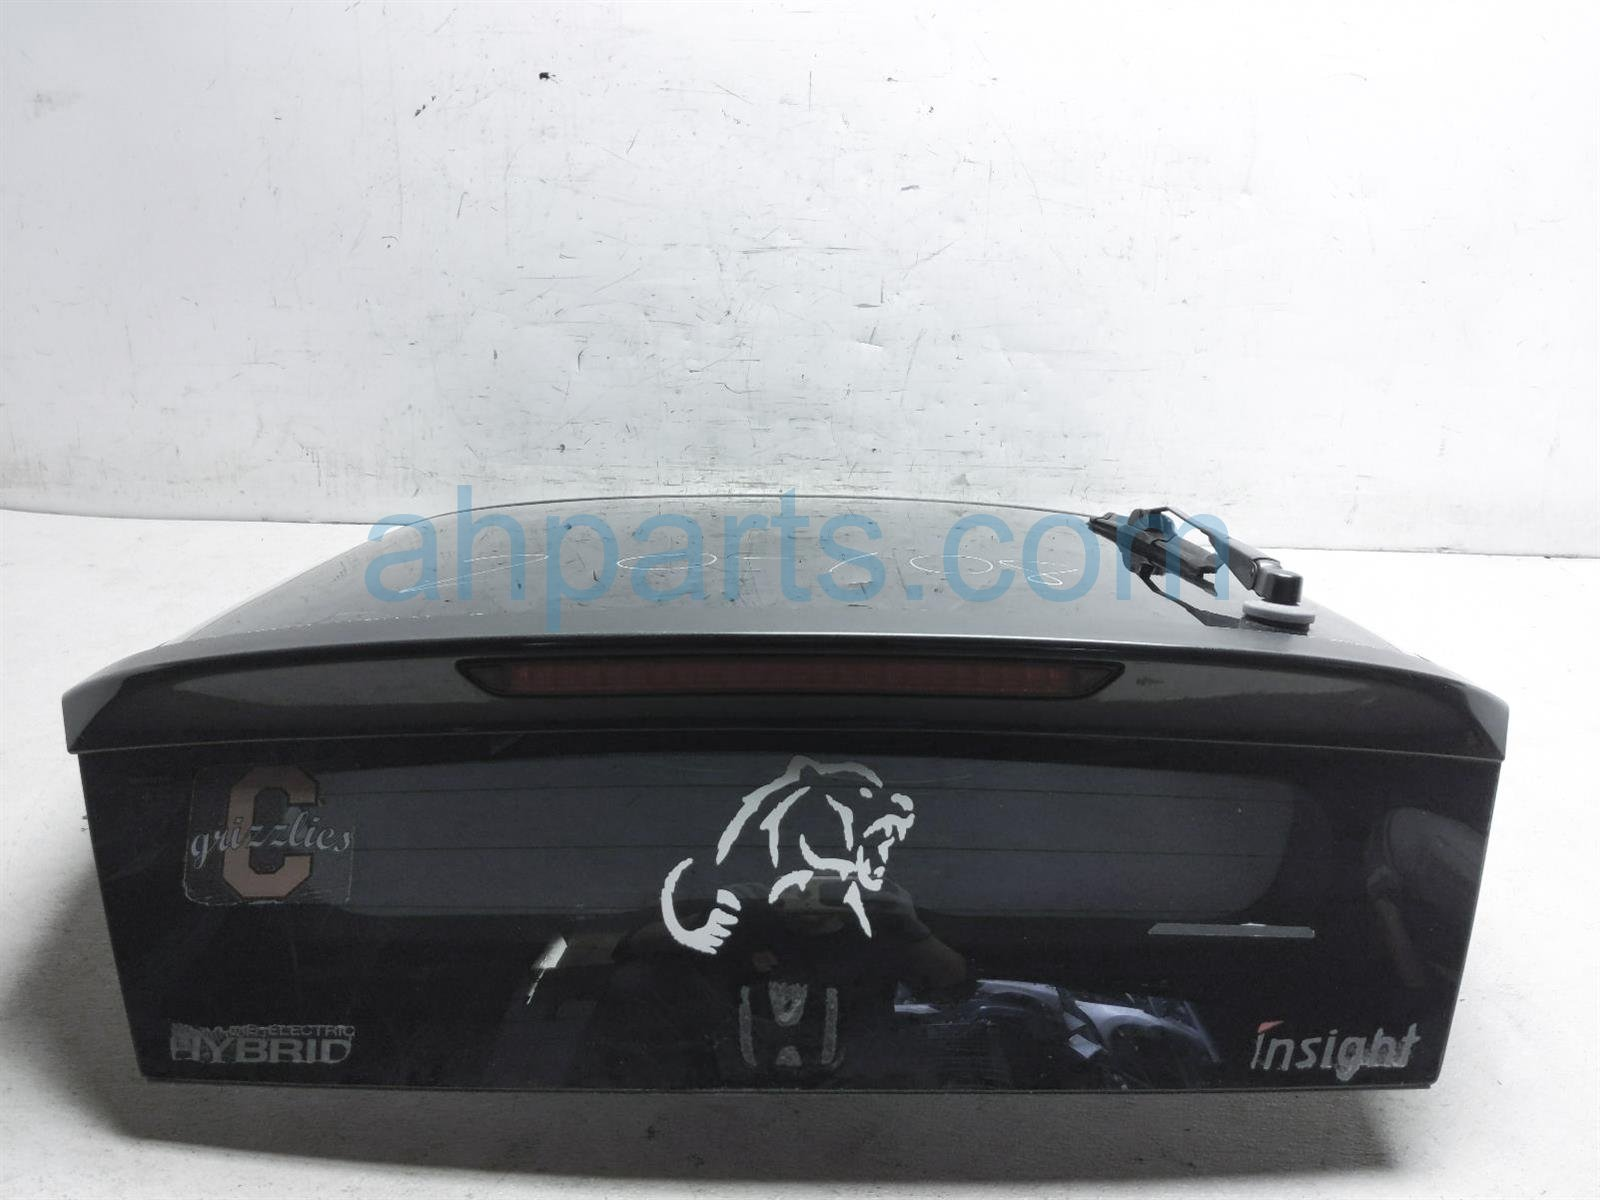 2003 Honda Insight Deck Trunk Lid Lift Gate / Tail Gate   Grey 68100 S3Y A90ZZ Replacement